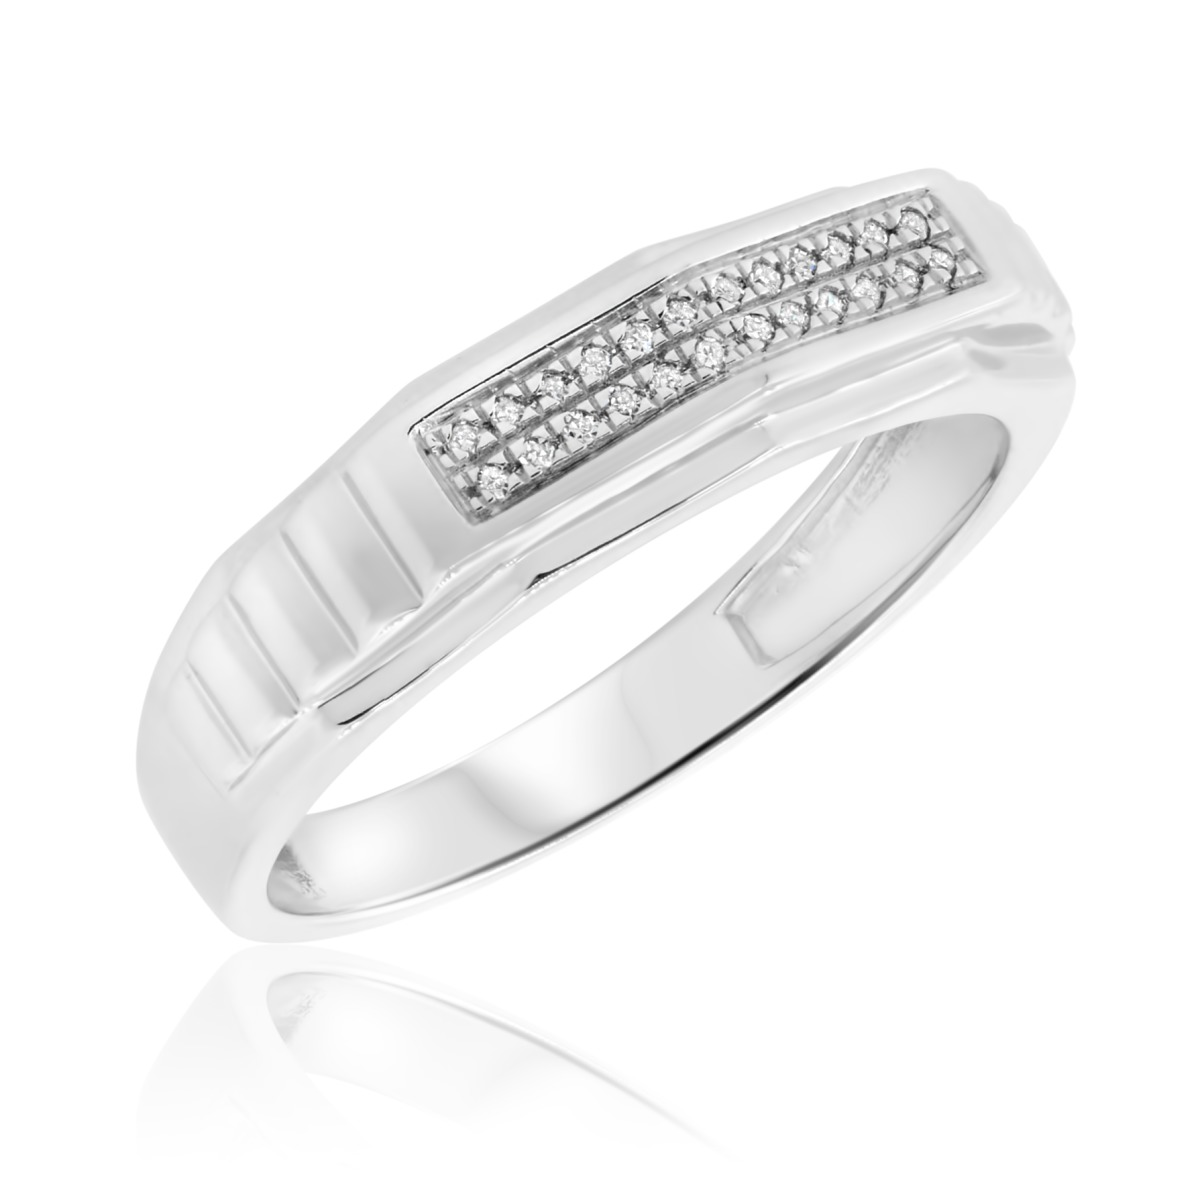 1/20 Carat T.W. Diamond Ladies Wedding Band  14K White Gold